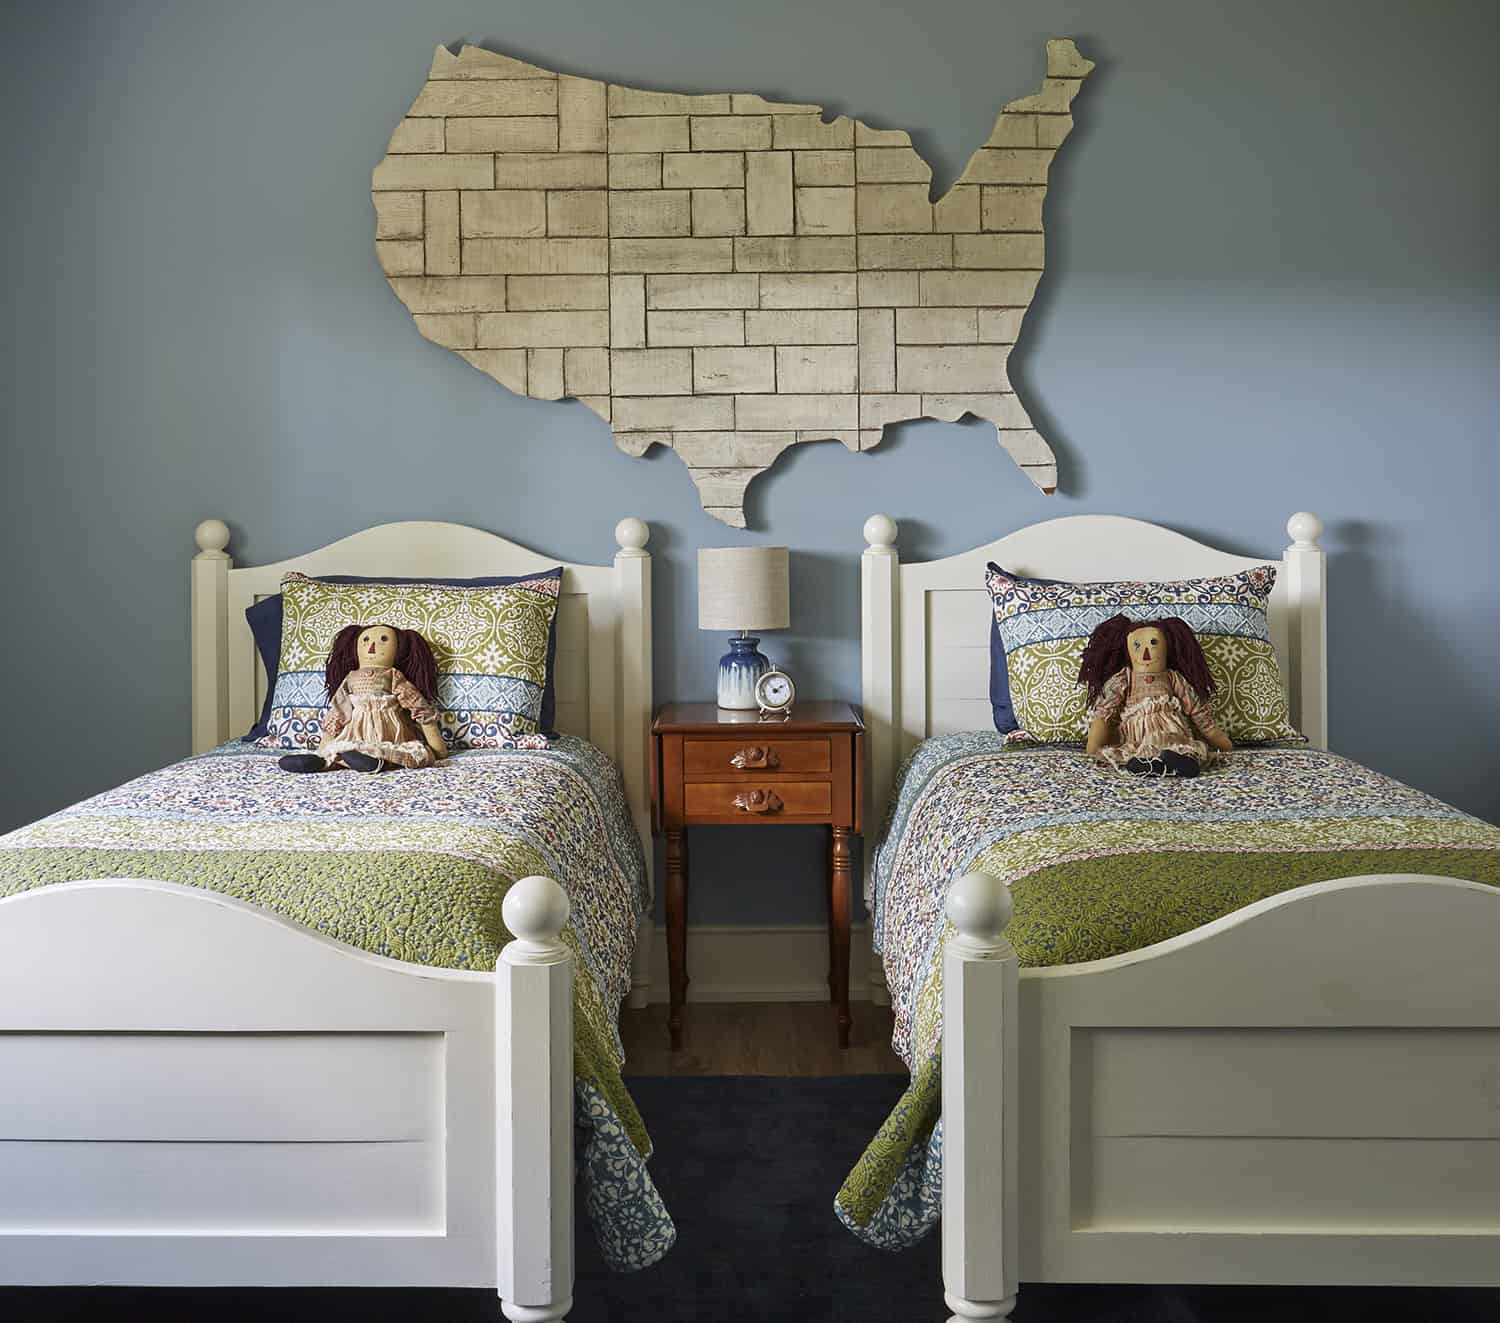 twin beds with dolls on bed and large wooden us map